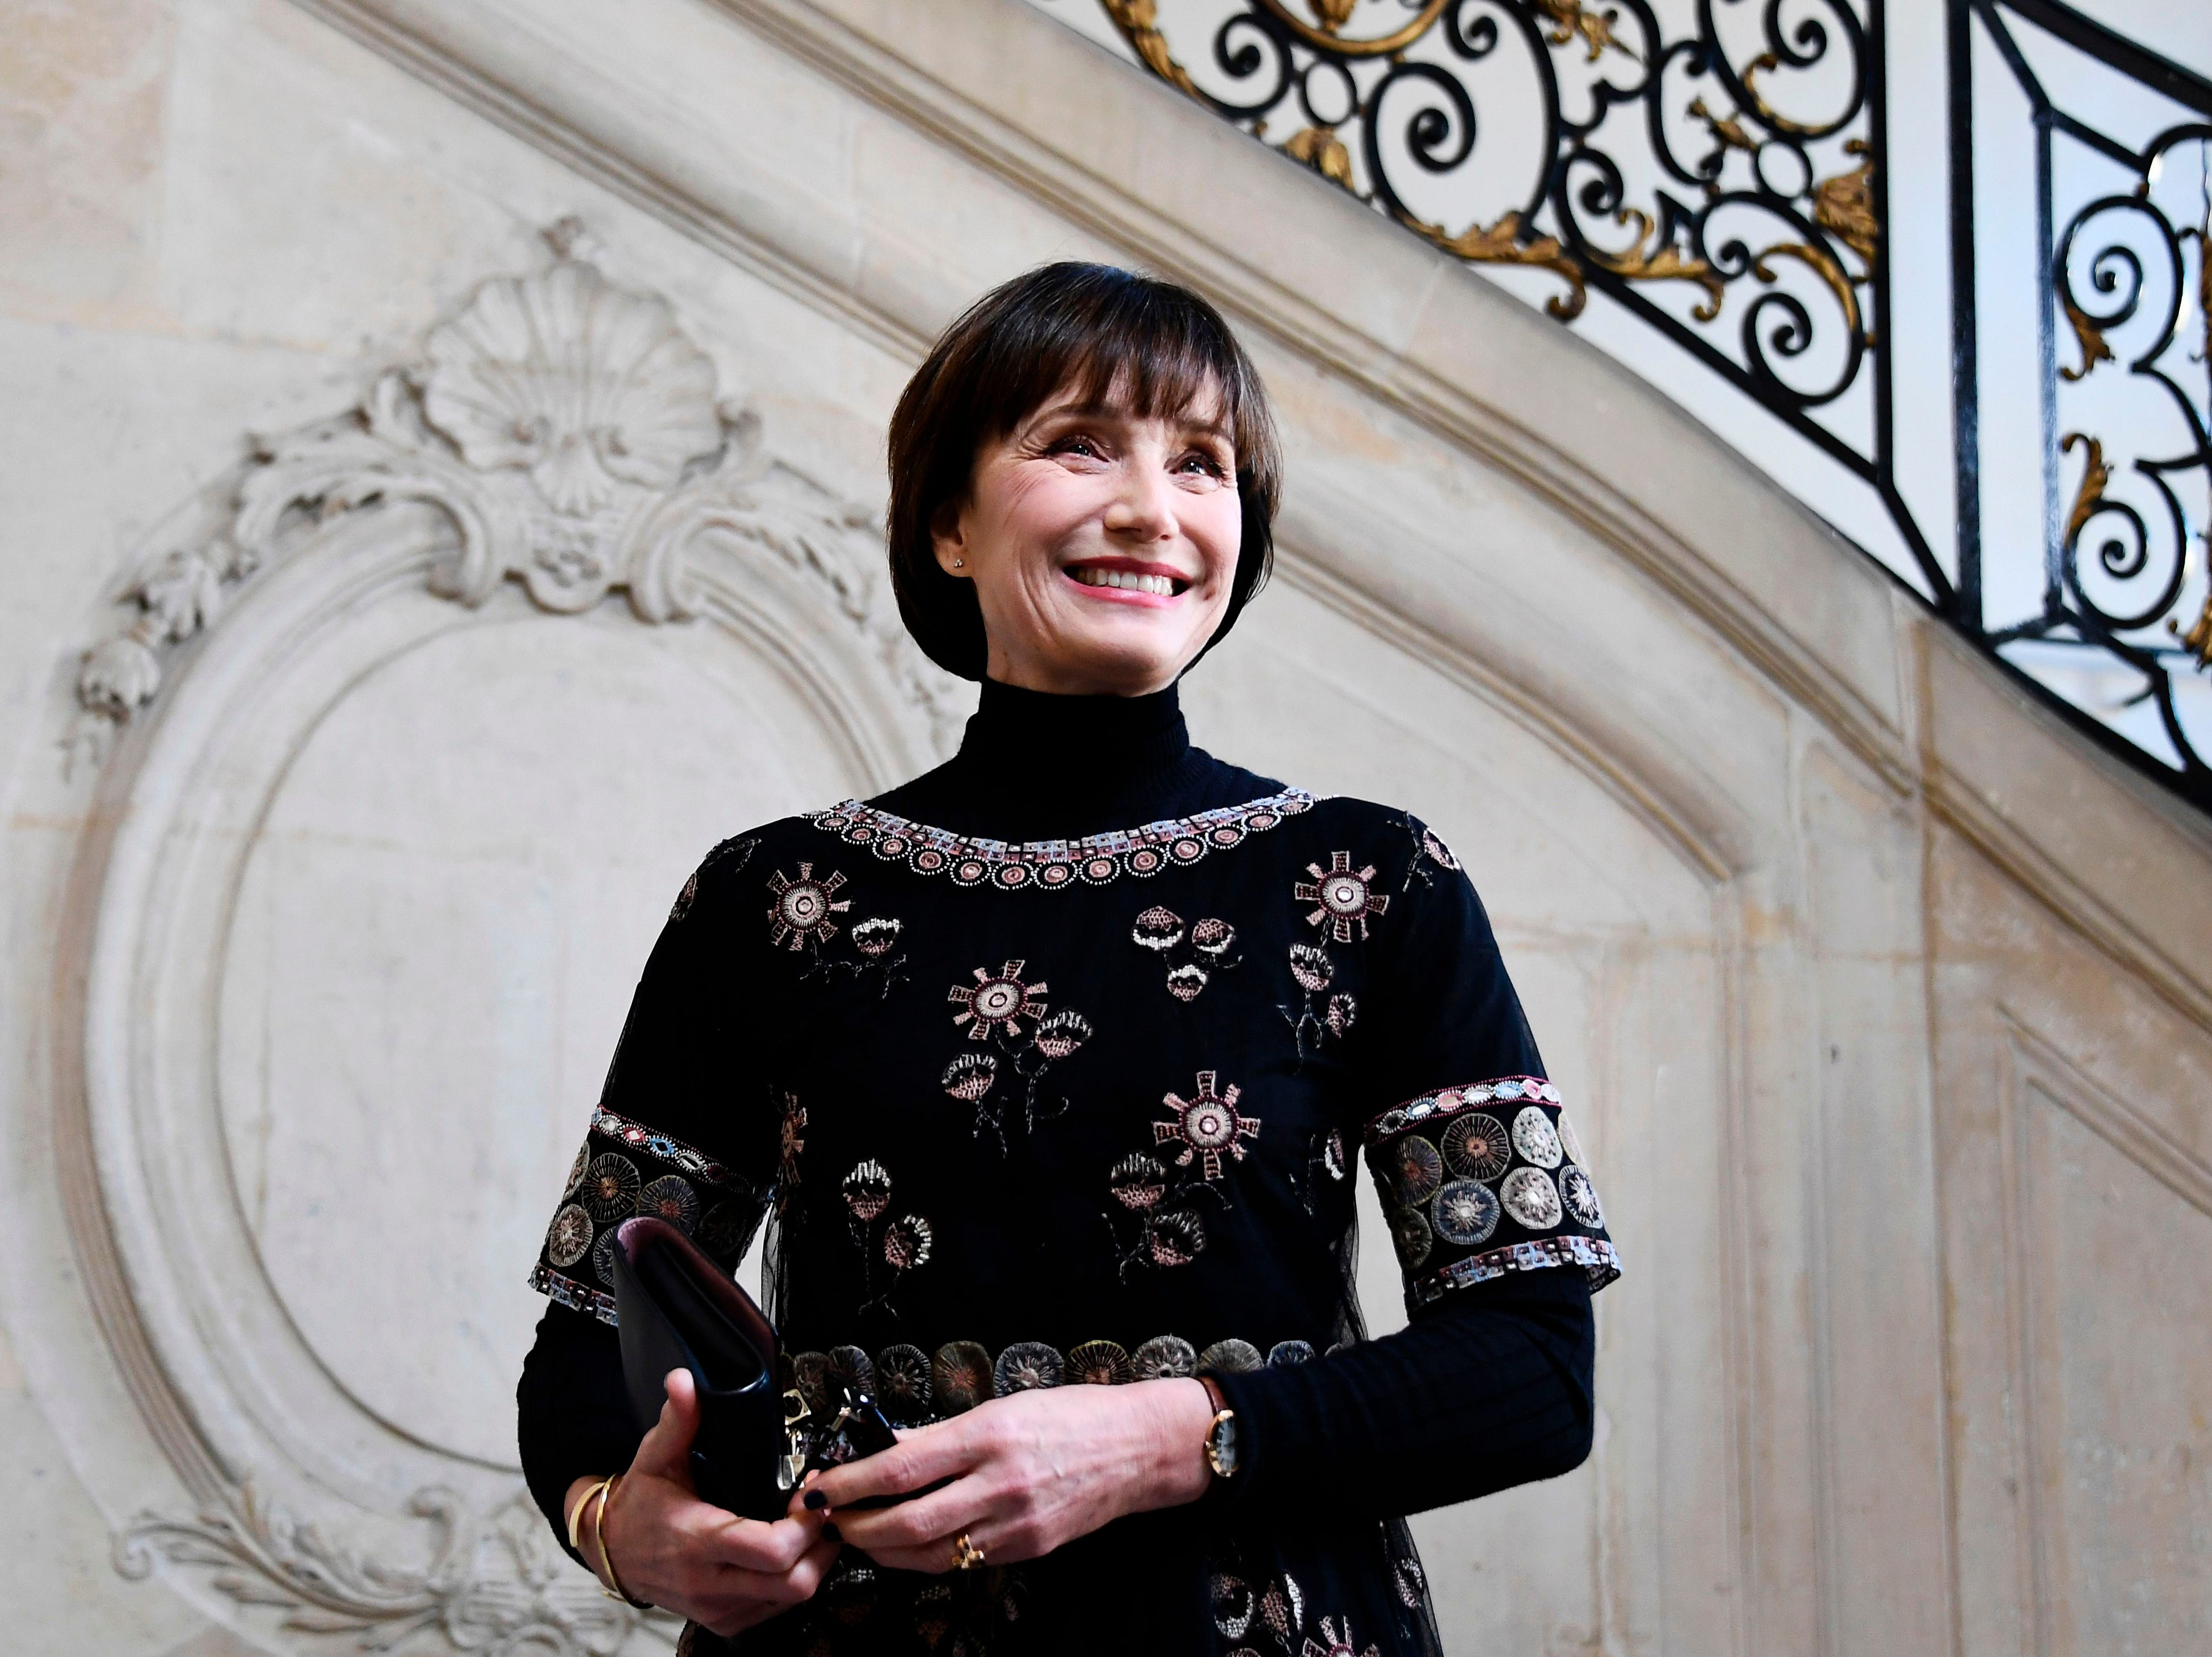 TOPSHOT - British actress Kristin Scott Thomas poses during a photocall prior to the 2019 Spring-Summer Haute Couture collection fashion show by Christian Dior in Paris, on January 21, 2019. (Photo by Anne-Christine POUJOULAT / AFP)ANNE-CHRISTINE POUJOULAT/AFP/Getty Images ORIG FILE ID: AFP_1CG6I3